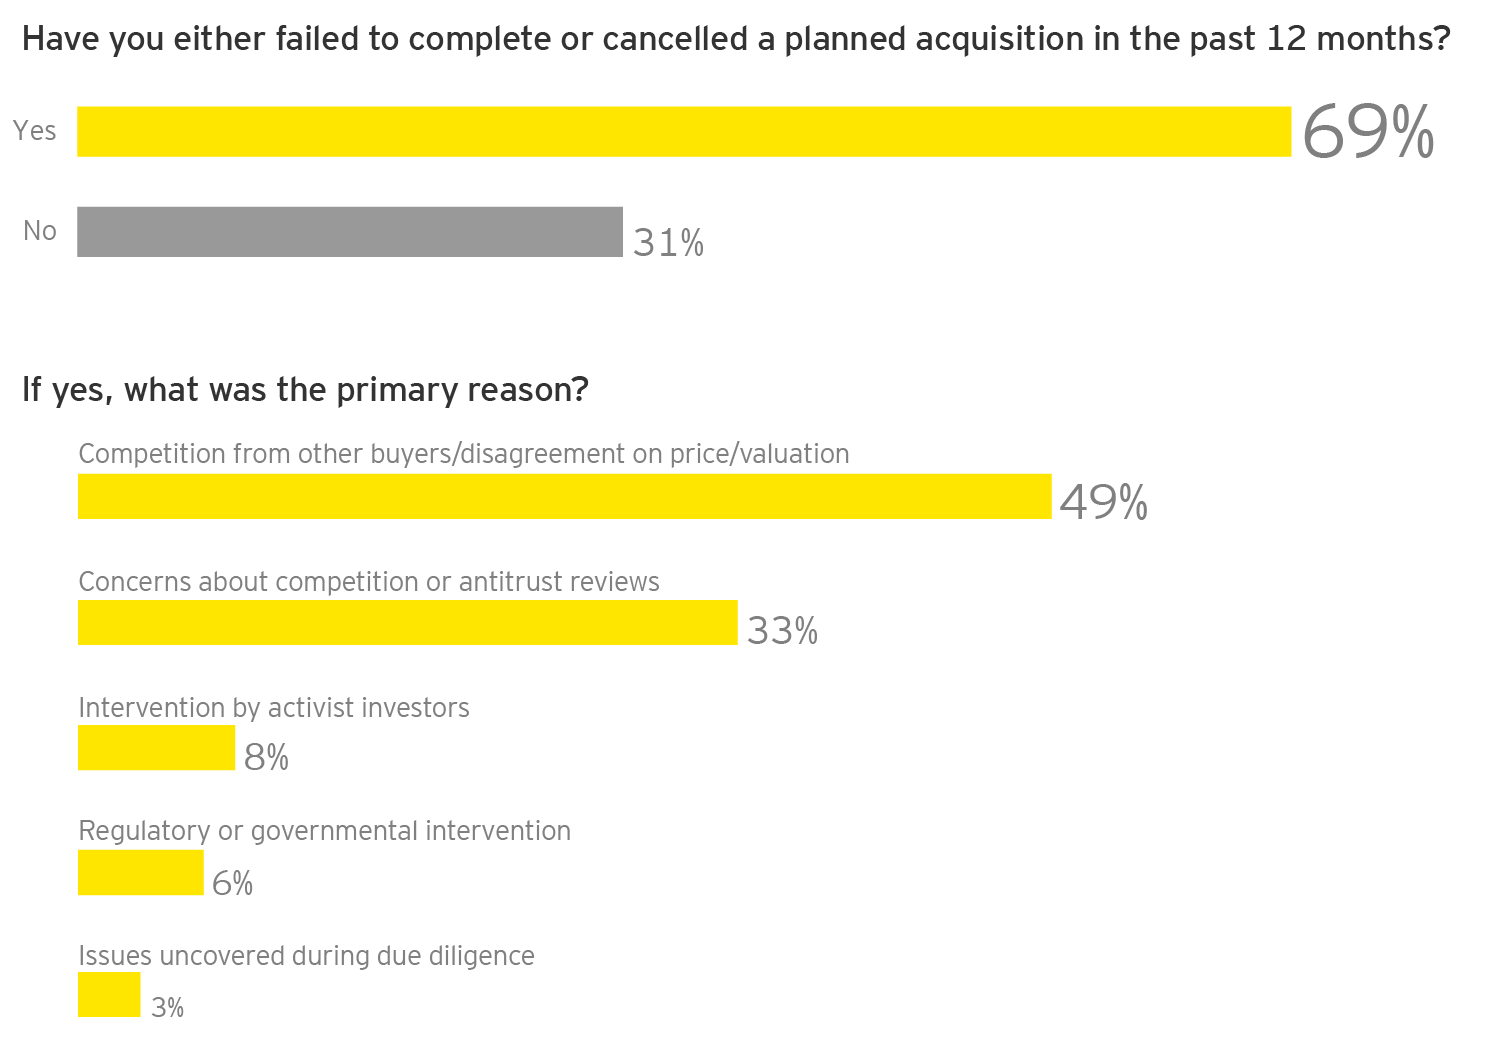 EY - Q: Have you either failed to complete or canceled a planned acquisition in the past 12 months?